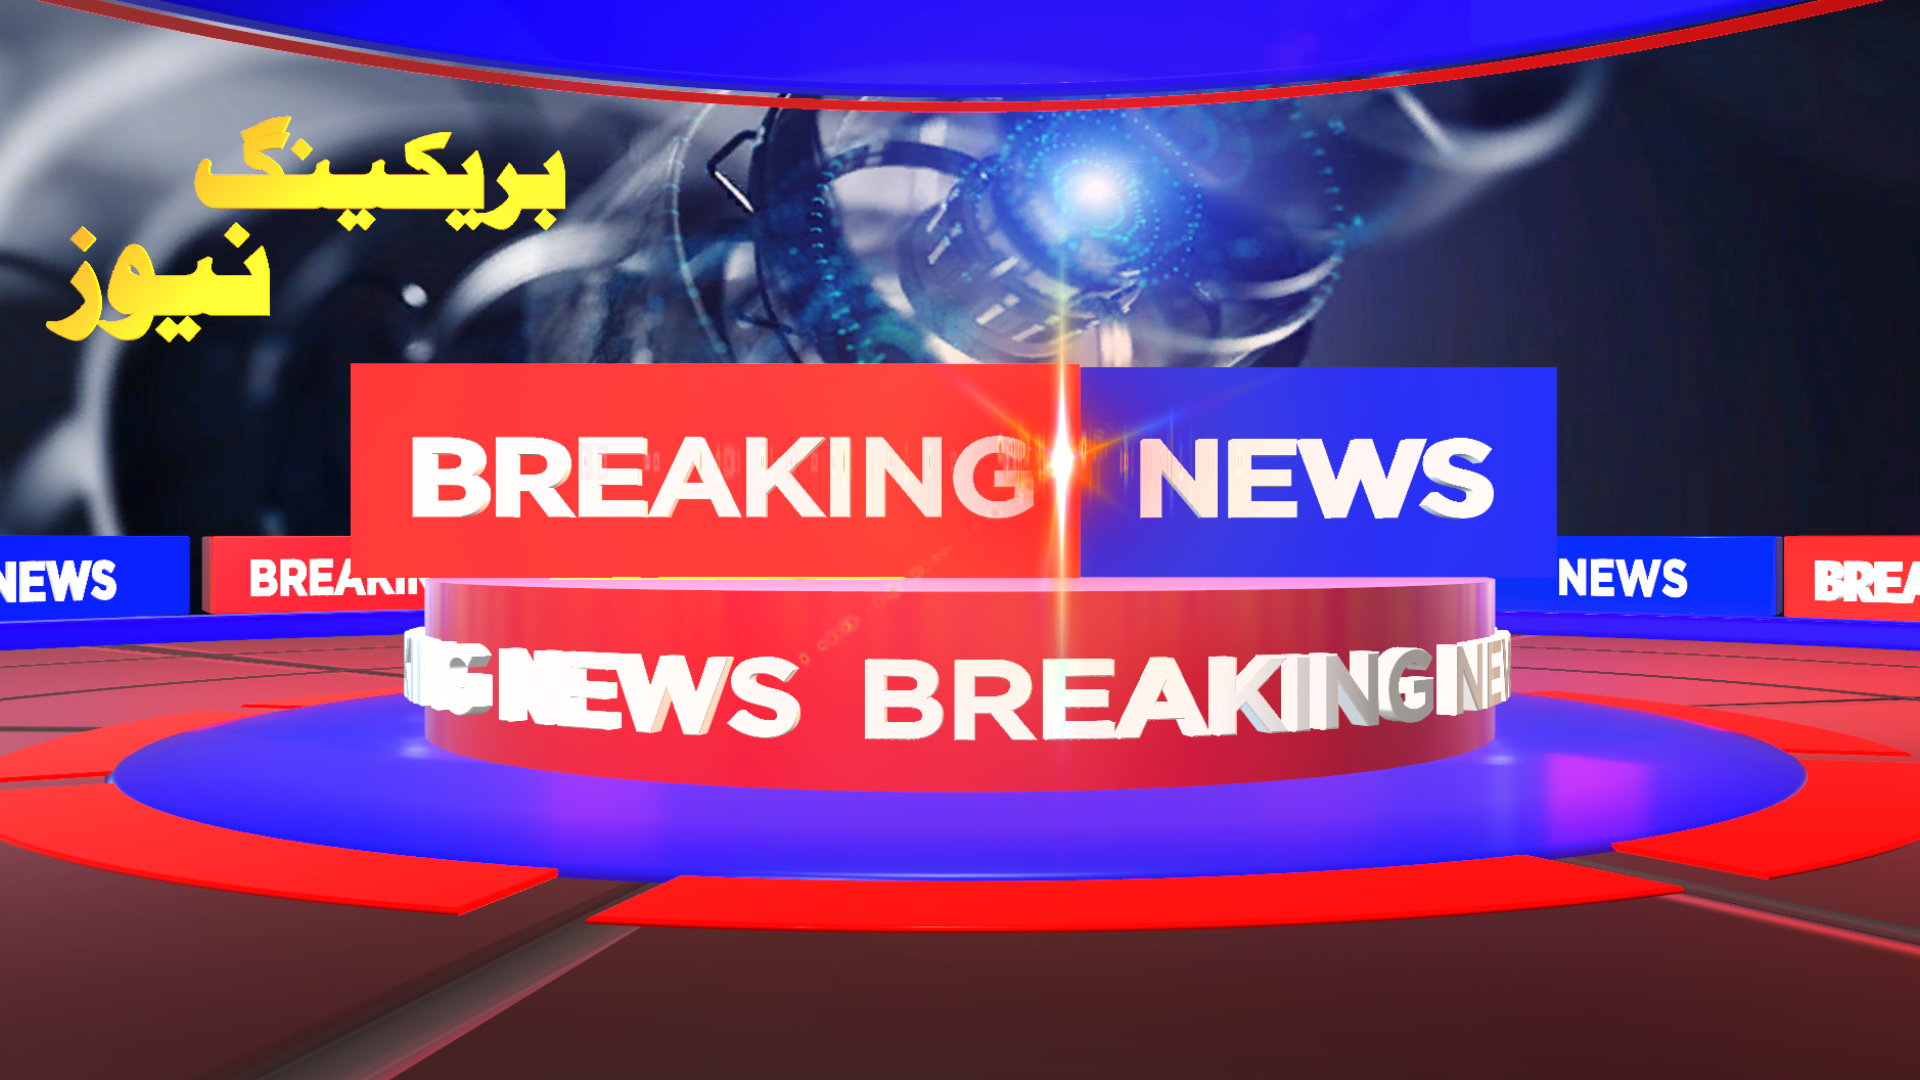 Adobe After Effects Free Breaking News Templates Mtc Tutorials